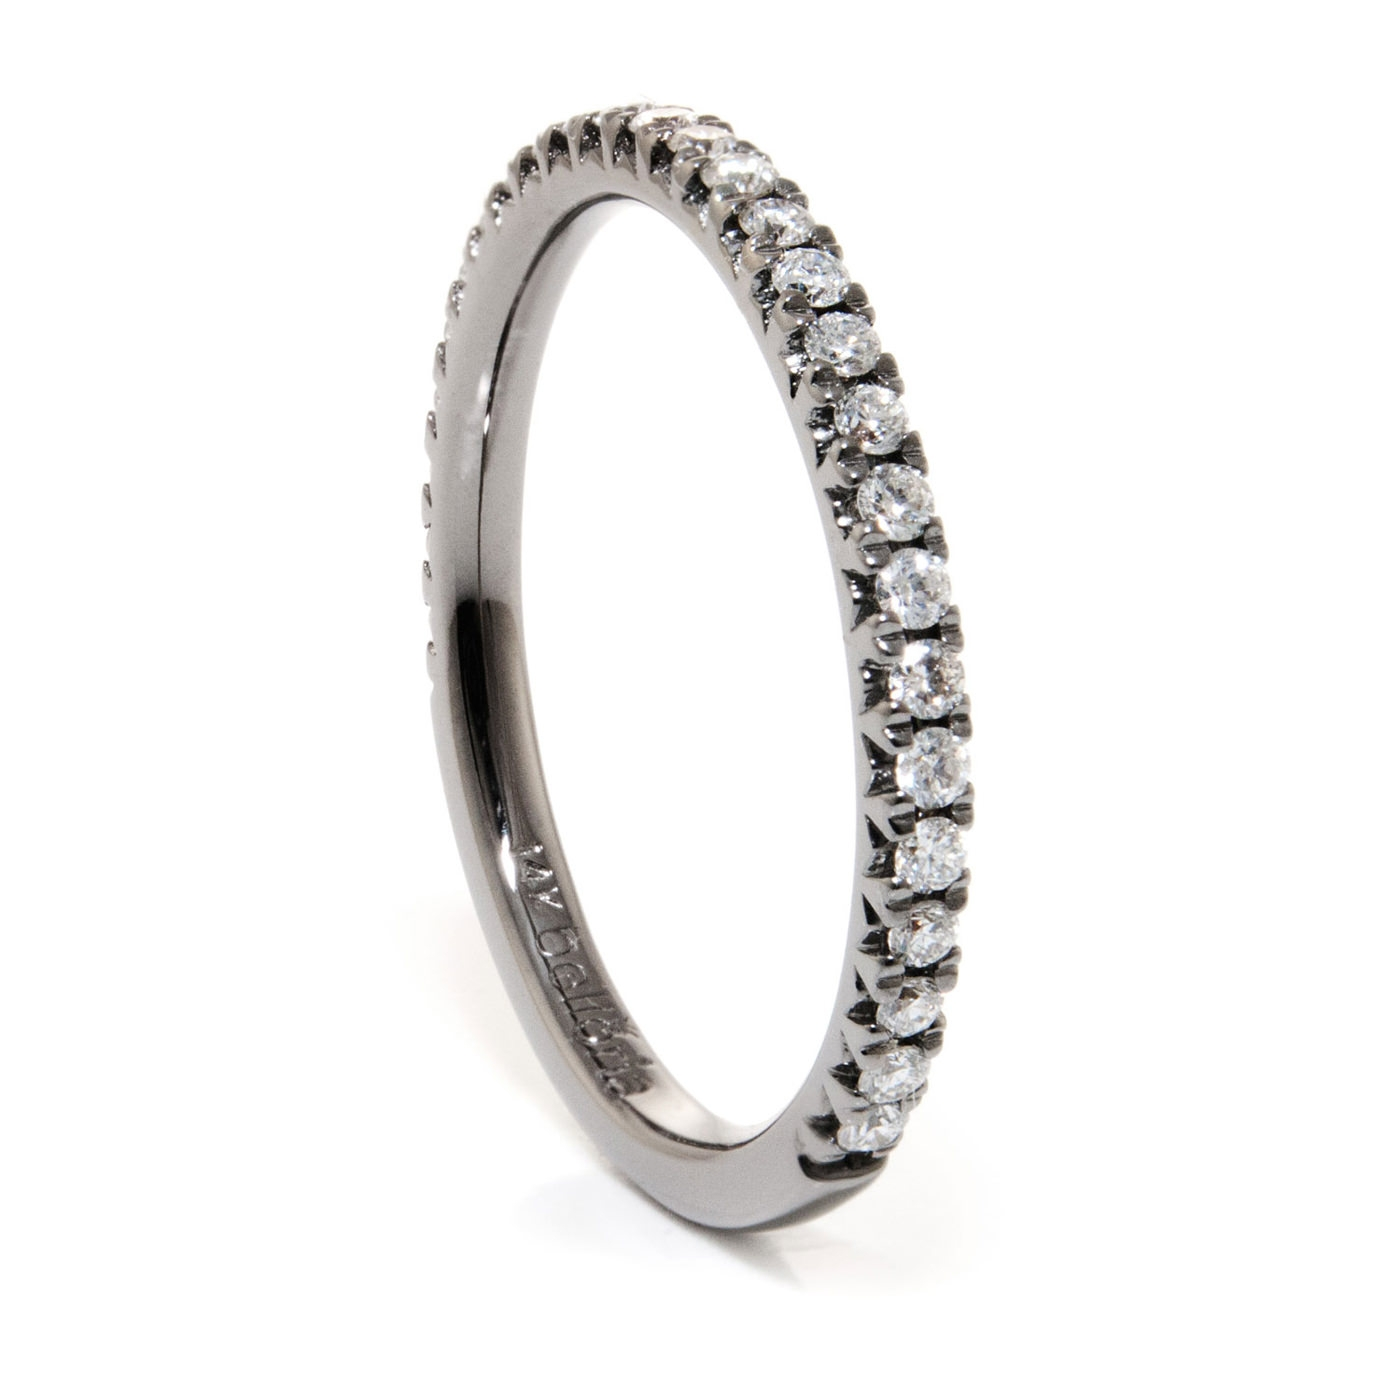 Black Rhodium Gold & Diamond Wedding Ring – Belloria – Eternity Bands Intended For Most Recently Released Rhodium Wedding Bands (View 2 of 15)